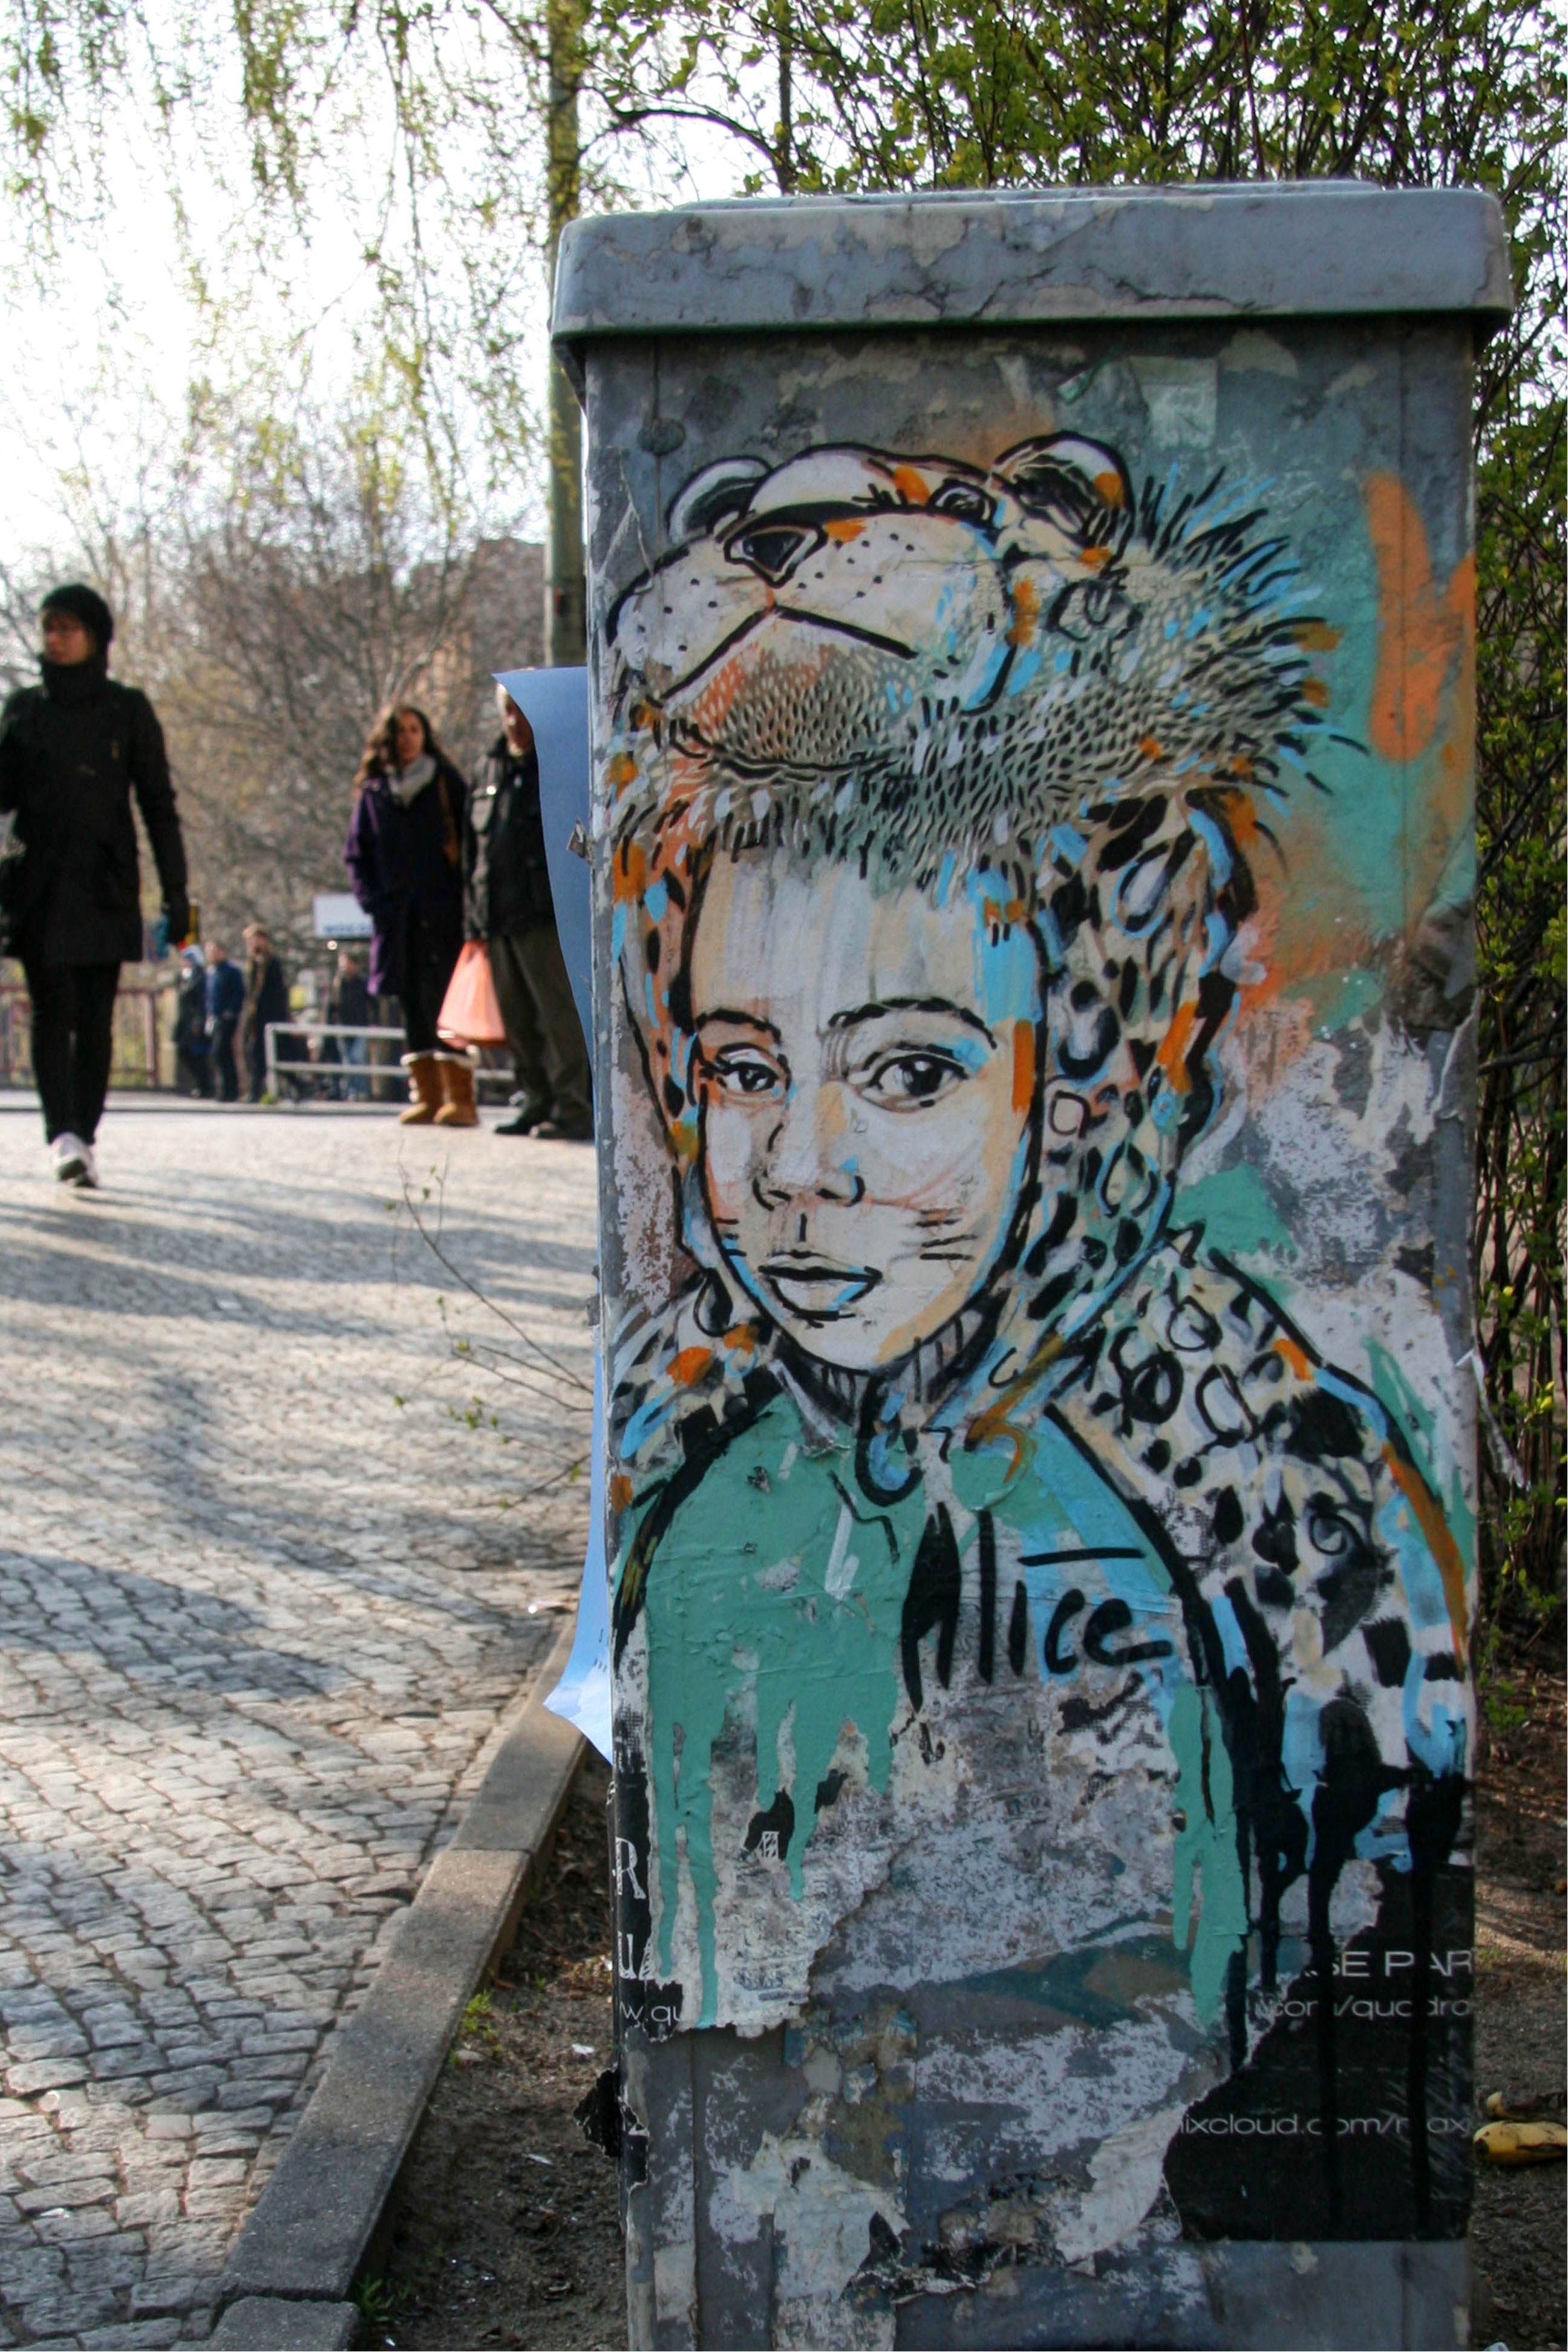 Child in Leopard Costume: Street Art by AliCé (Alice Pasquini) in Berlin